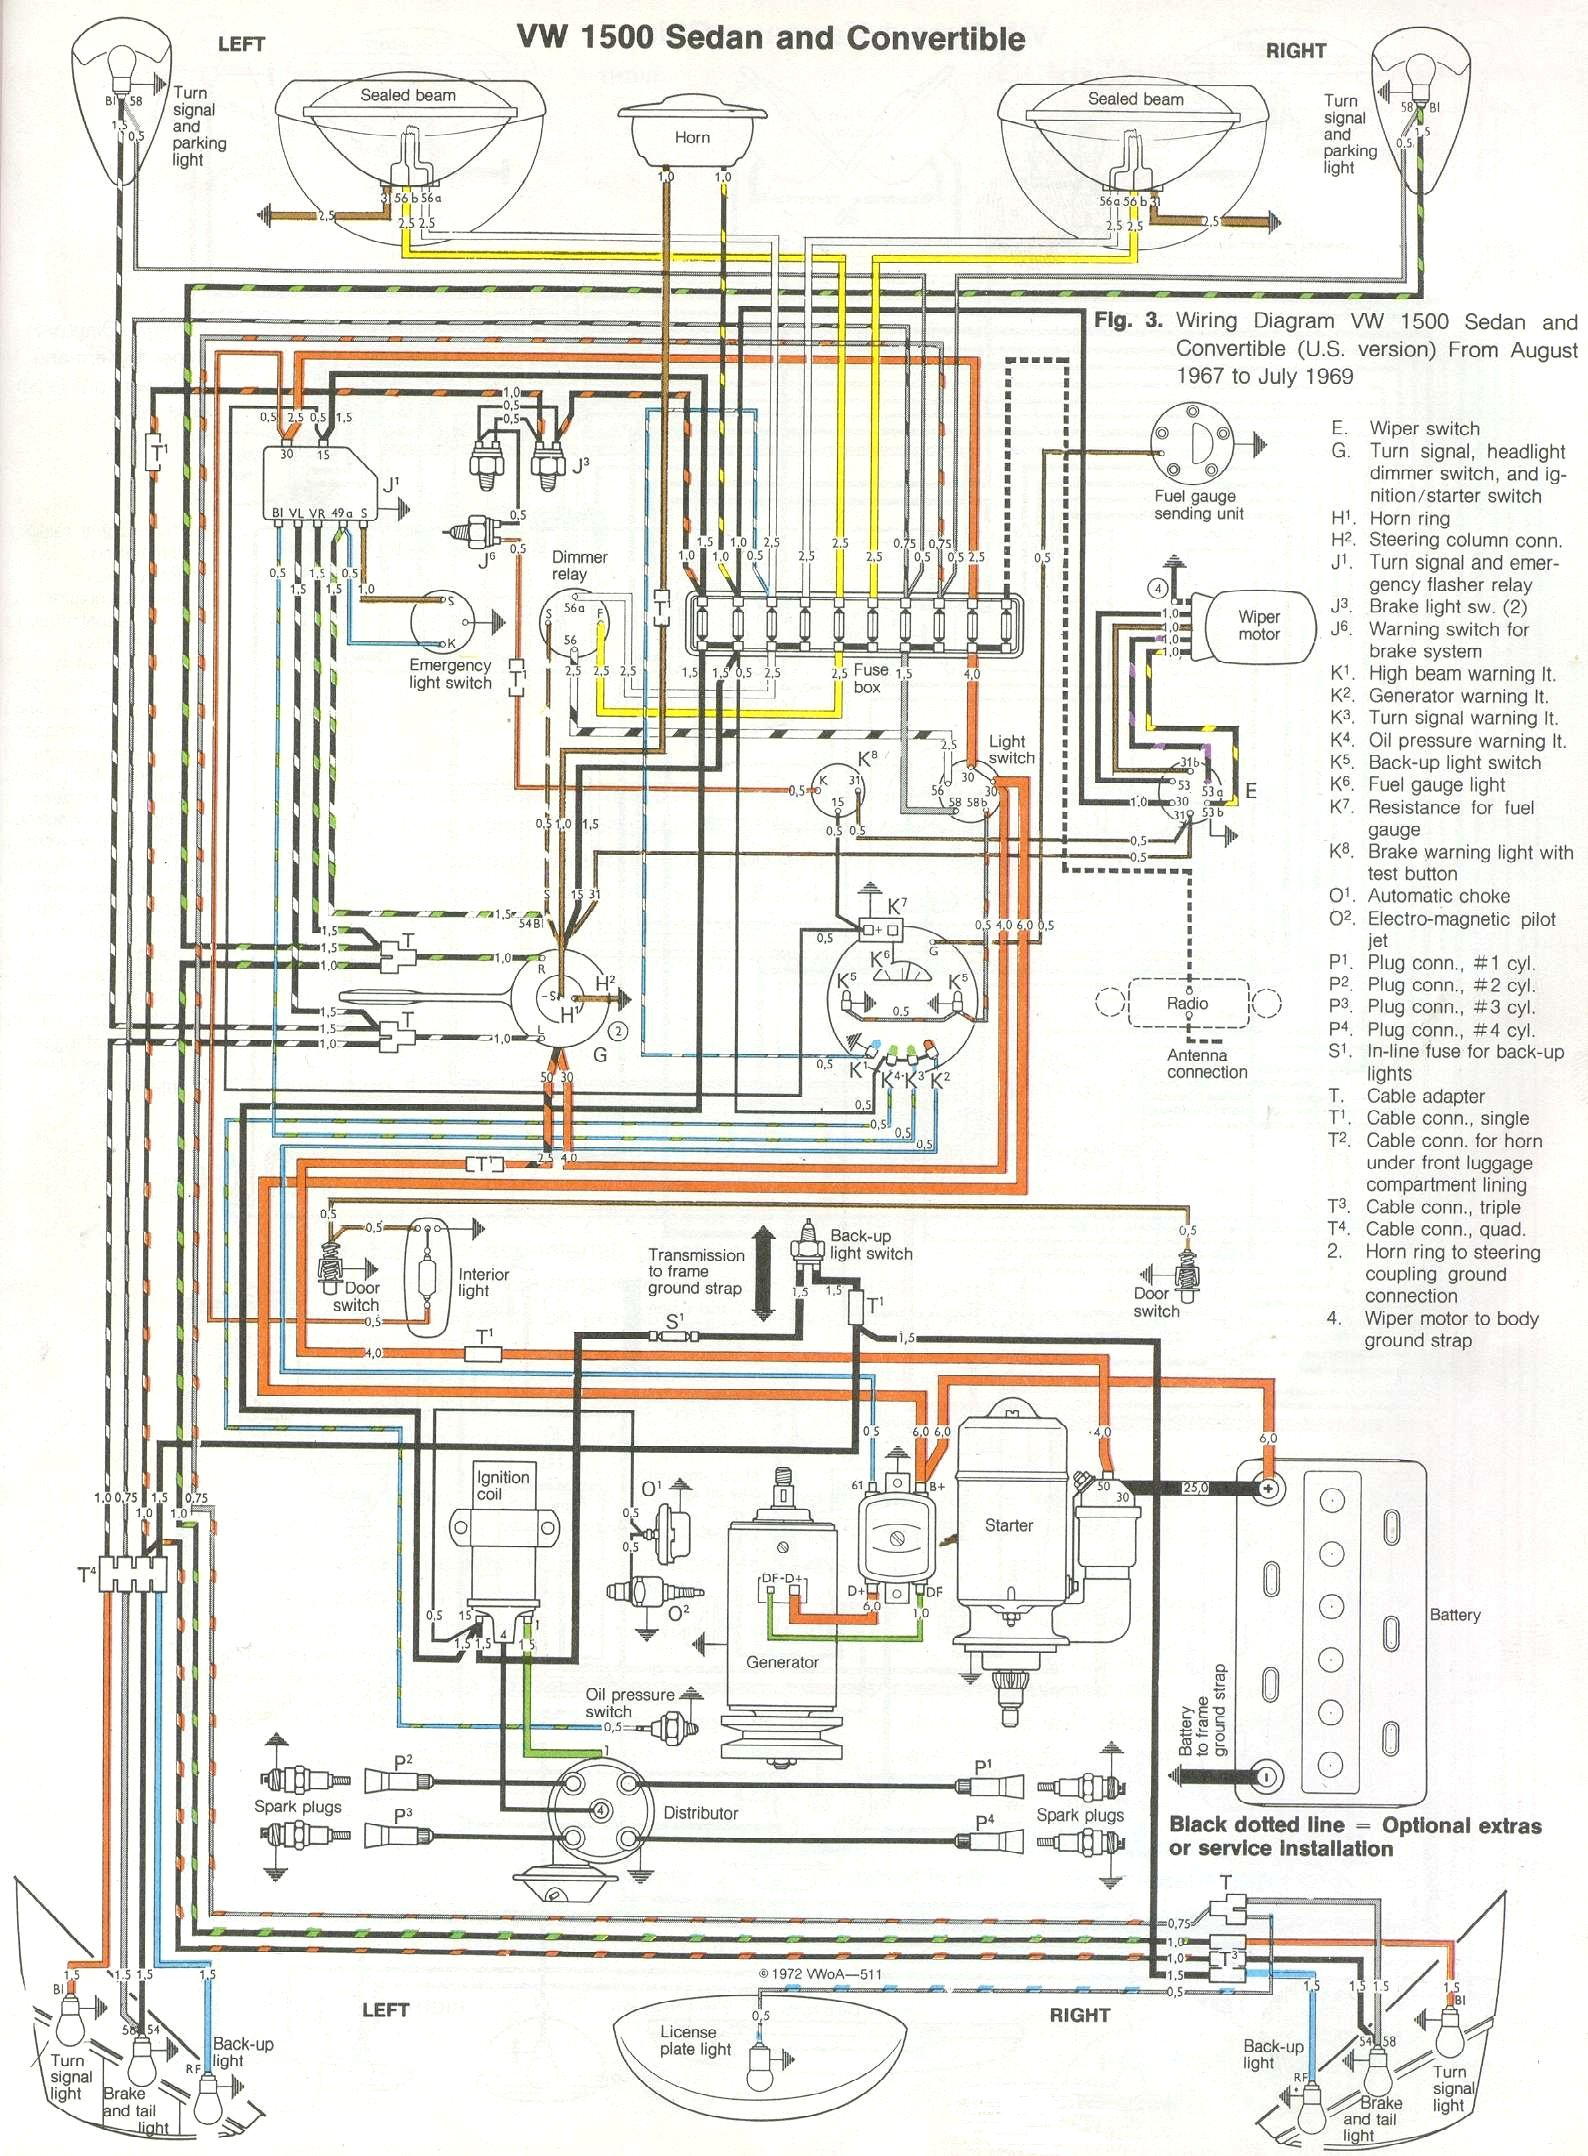 Vw Beetle Wiring - Wiring Diagrams Hubs - 1973 Vw Beetle Wiring Diagram